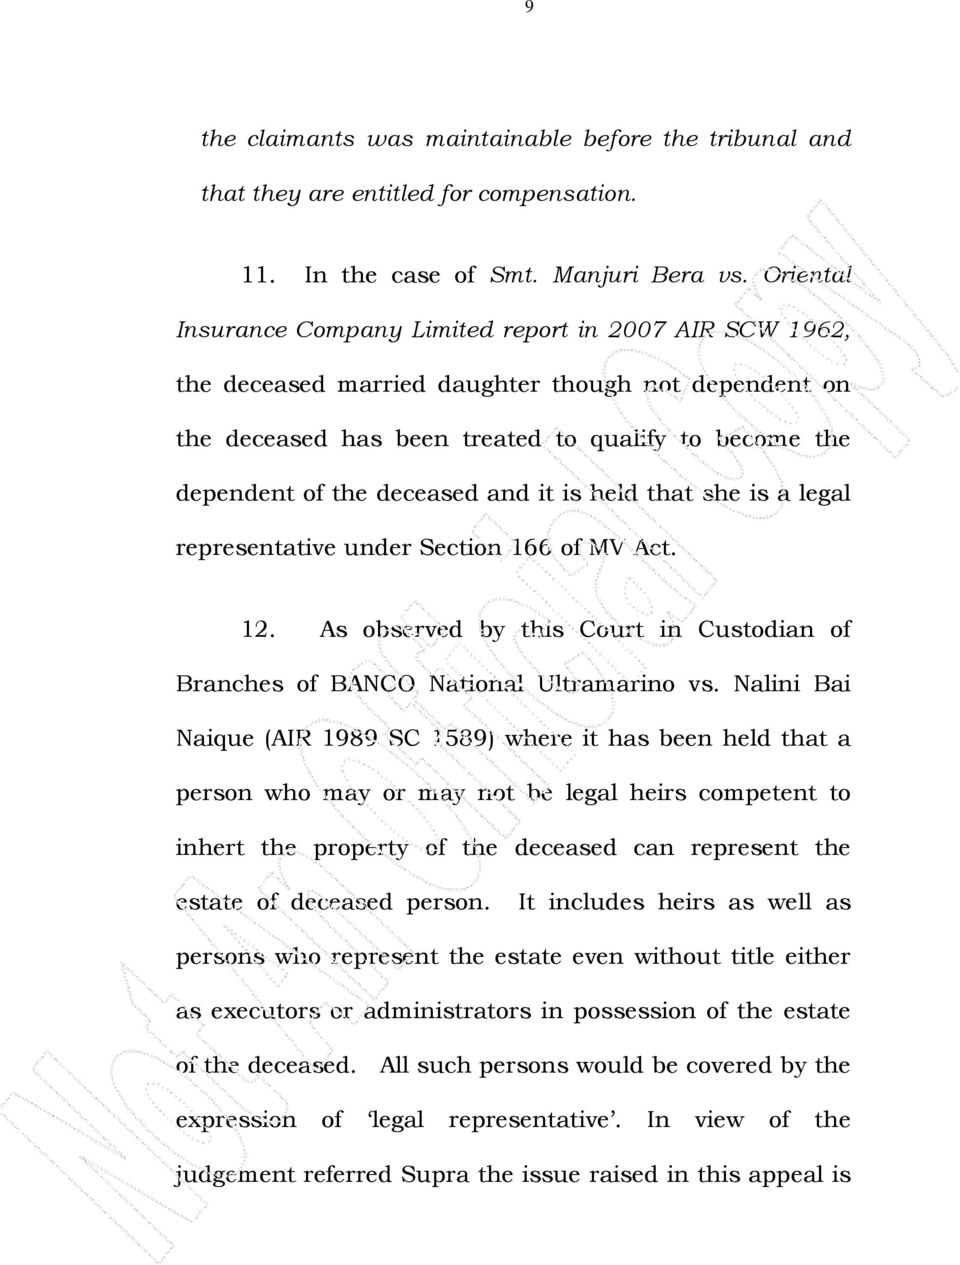 and it is held that she is a legal representative under Section 166 of MV Act. 12. As observed by this Court in Custodian of Branches of BANCO National Ultramarino vs.